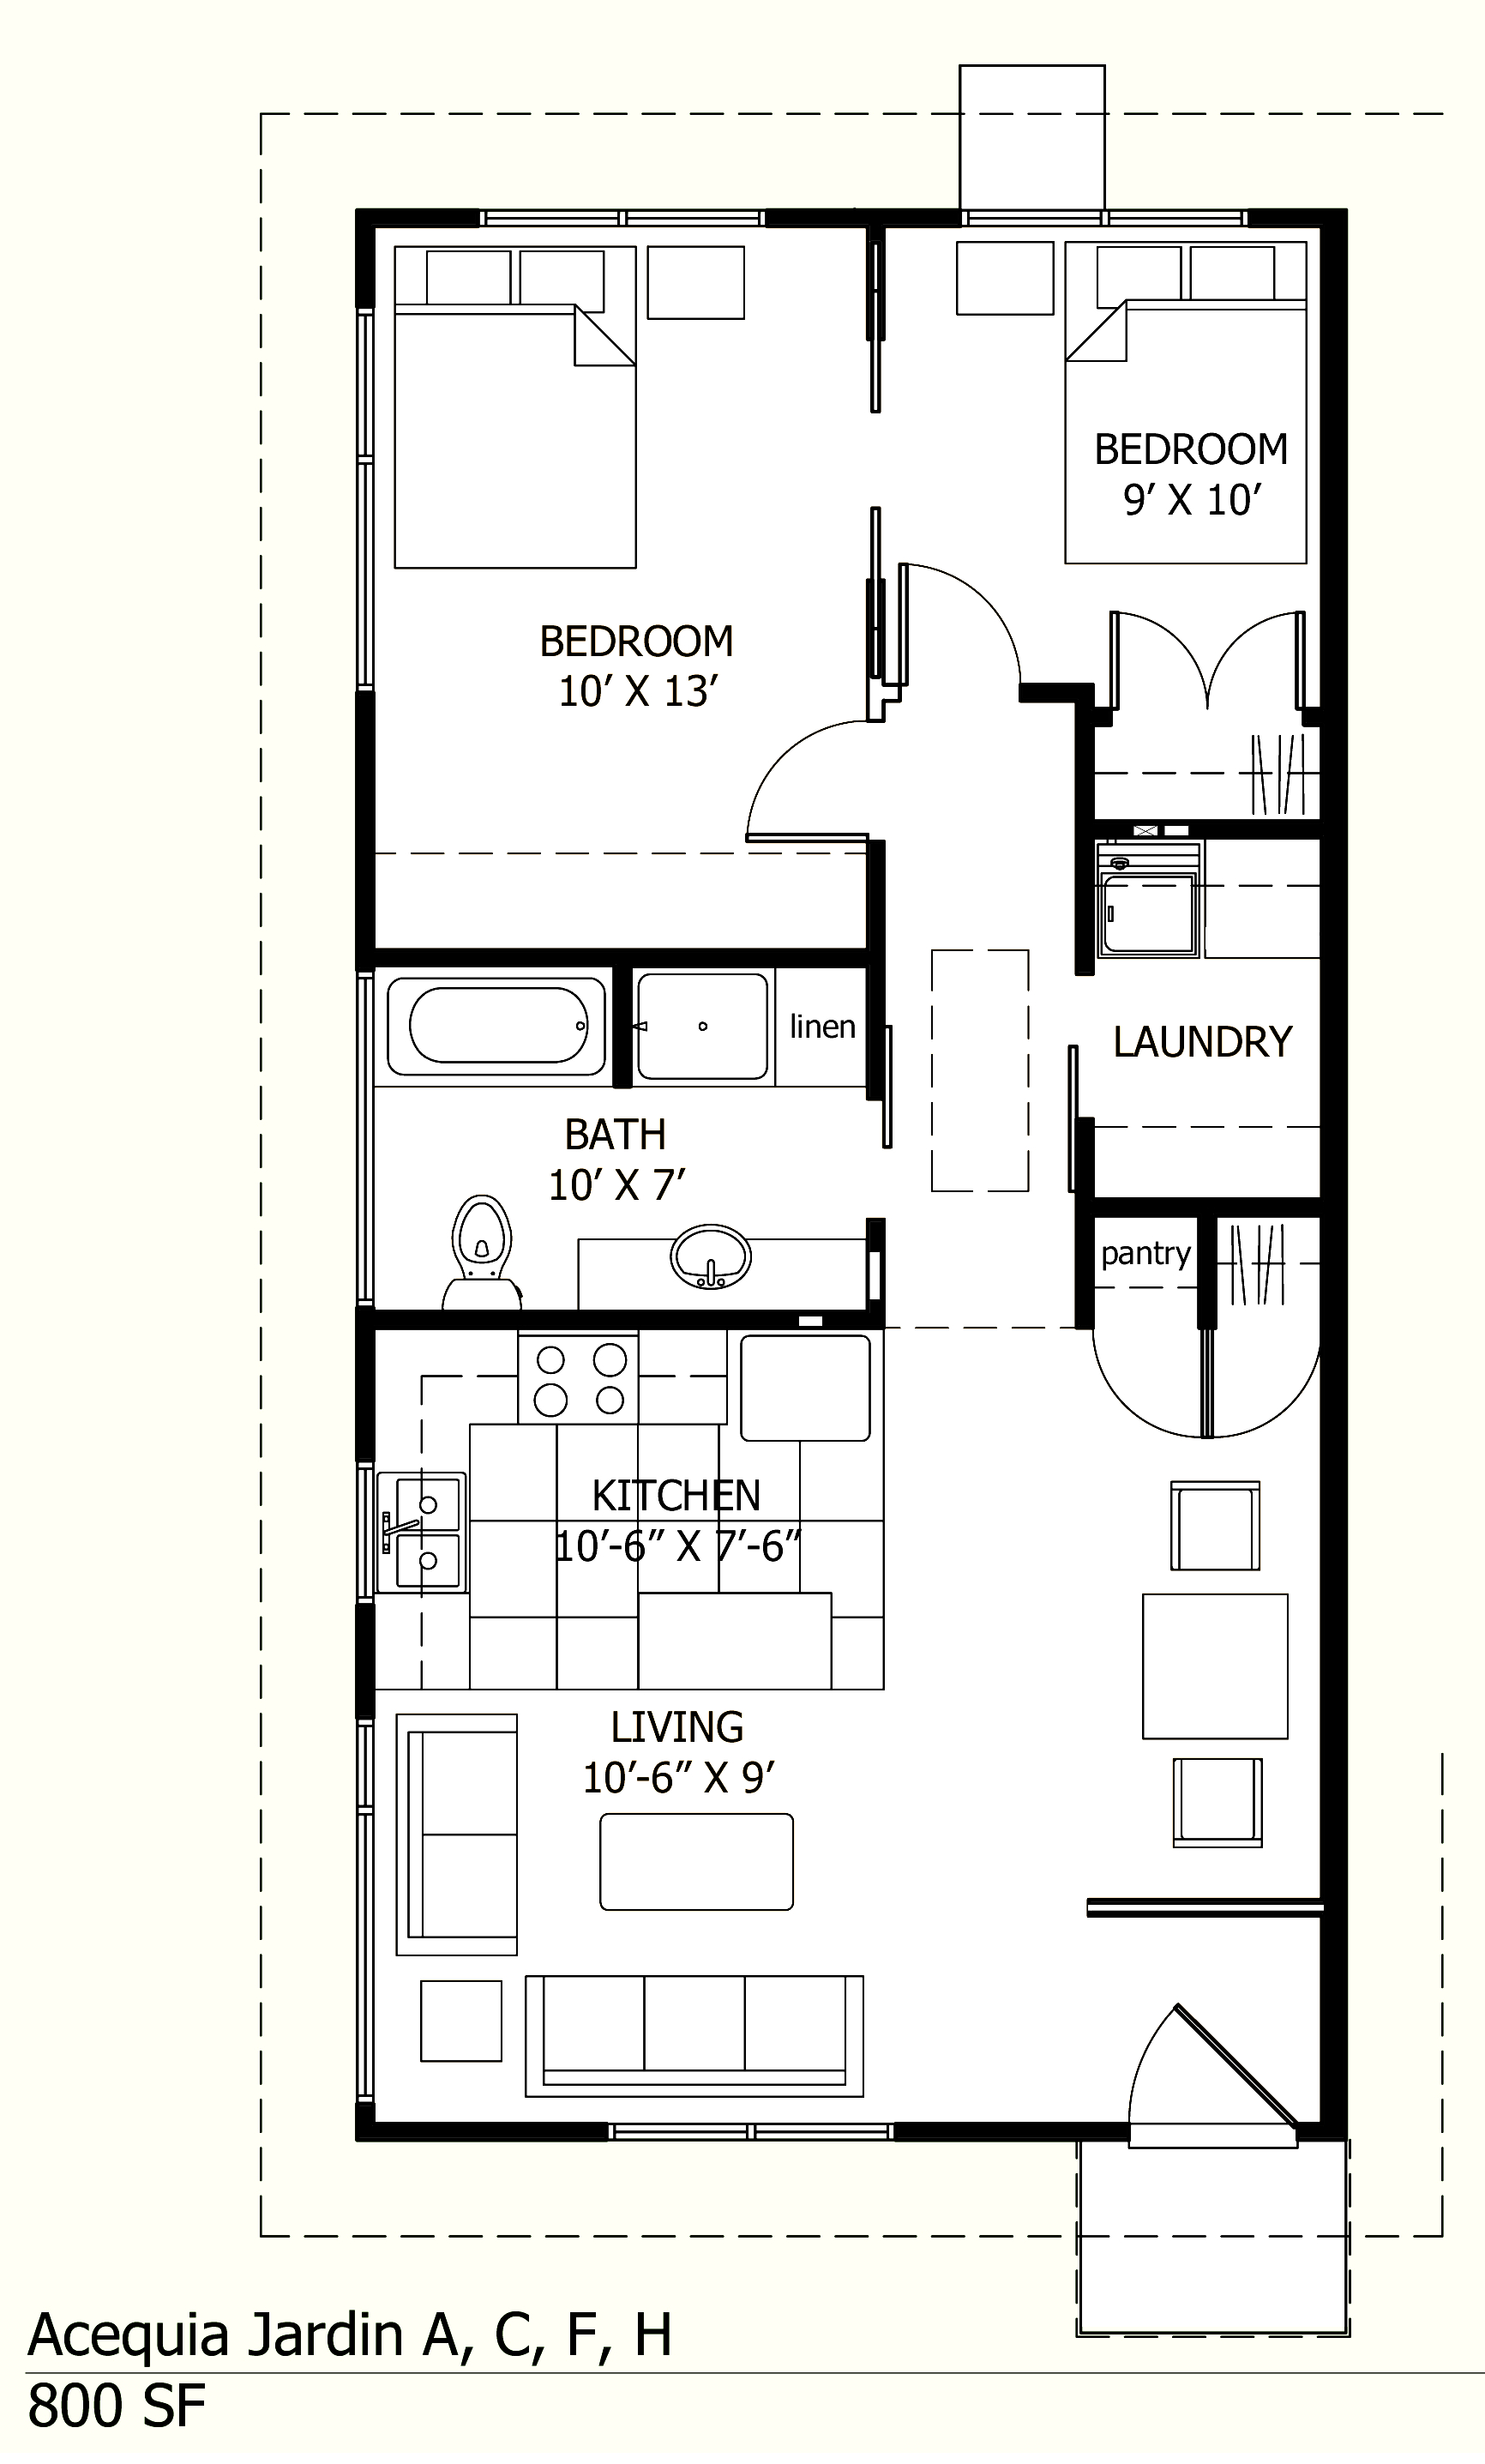 Glamorous 900 Square Foot House Plans Ideas - Best Image Engine ...